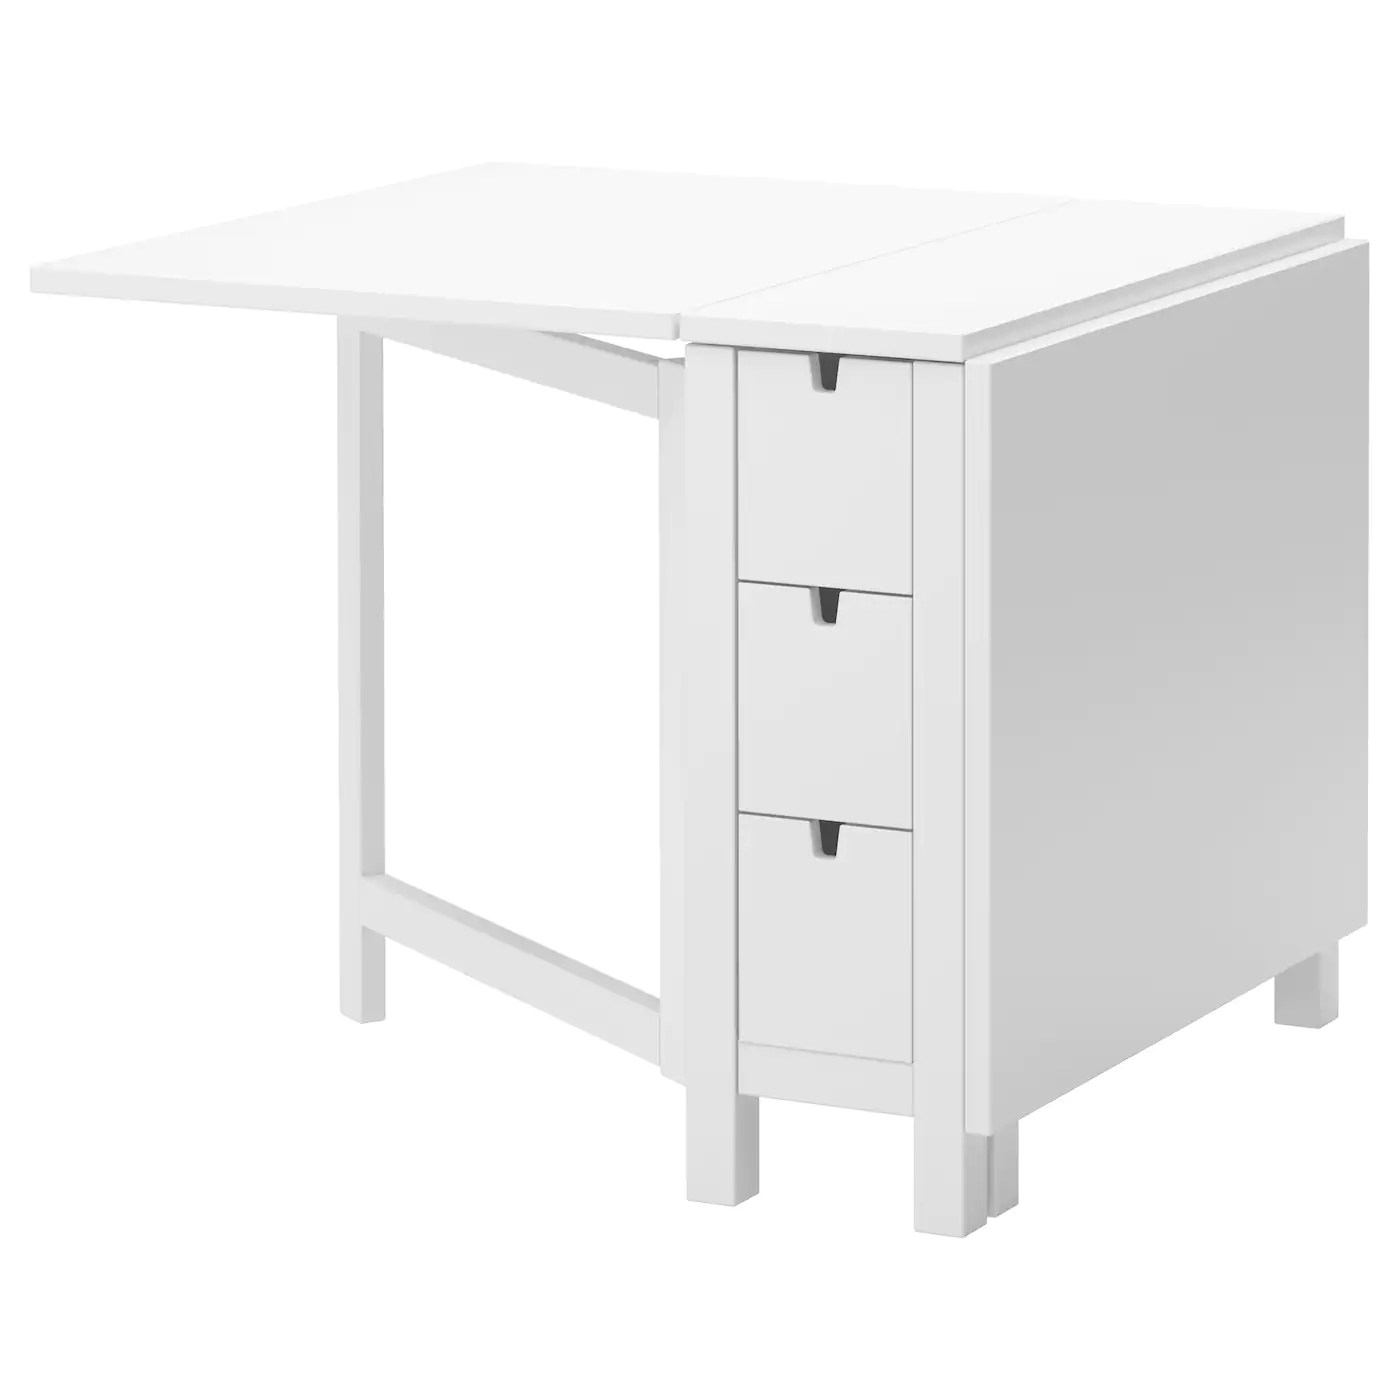 Table Carree Ikea Ikea Table Carre Excellent Table With Ikea Table Carre Simple